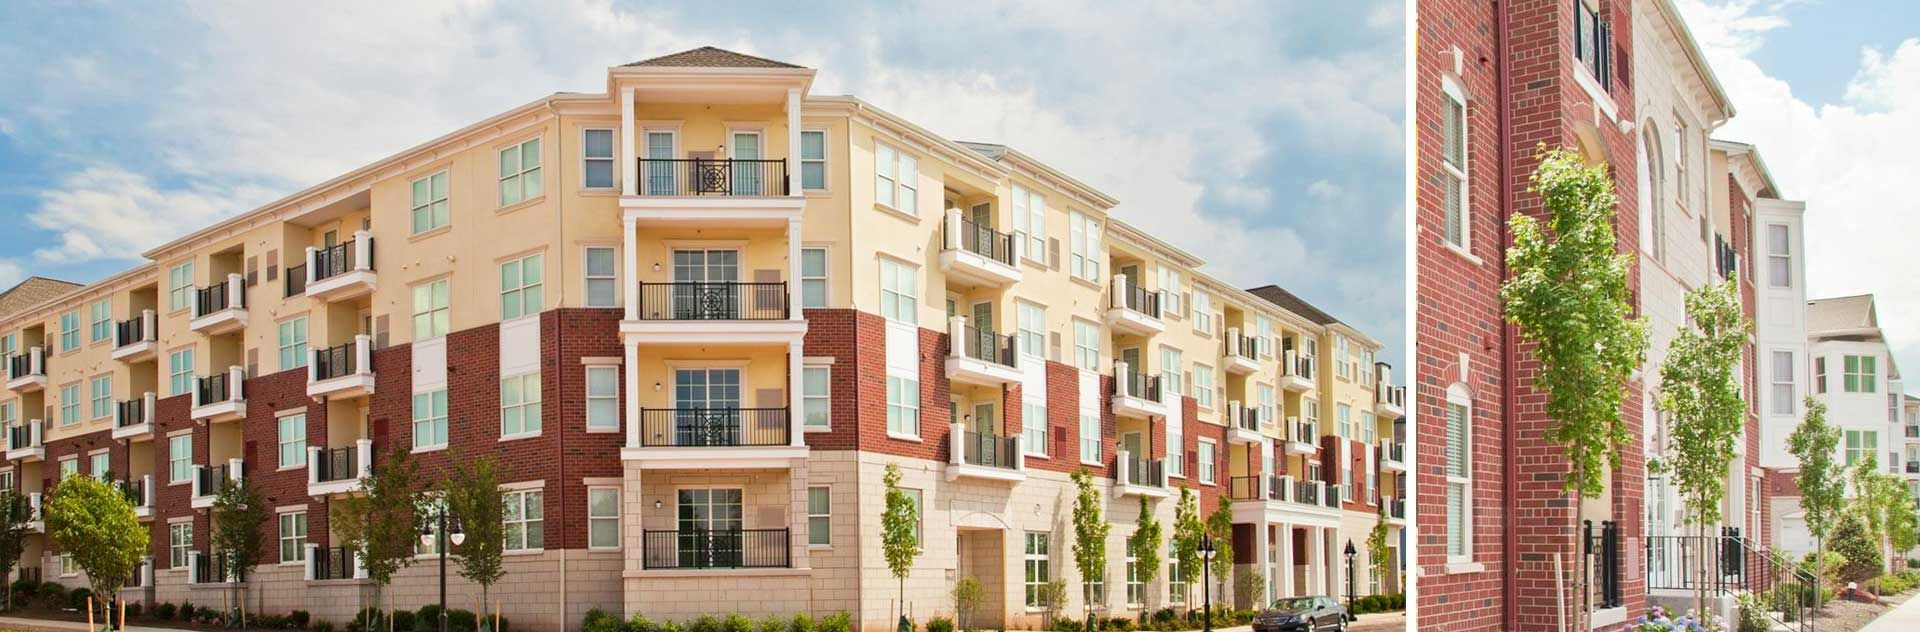 Luxury Apartments For Rent Lansdale North Wales Gwynnedd Montgomery County 19446 Apartments Exterior Bridgeview Lansdale